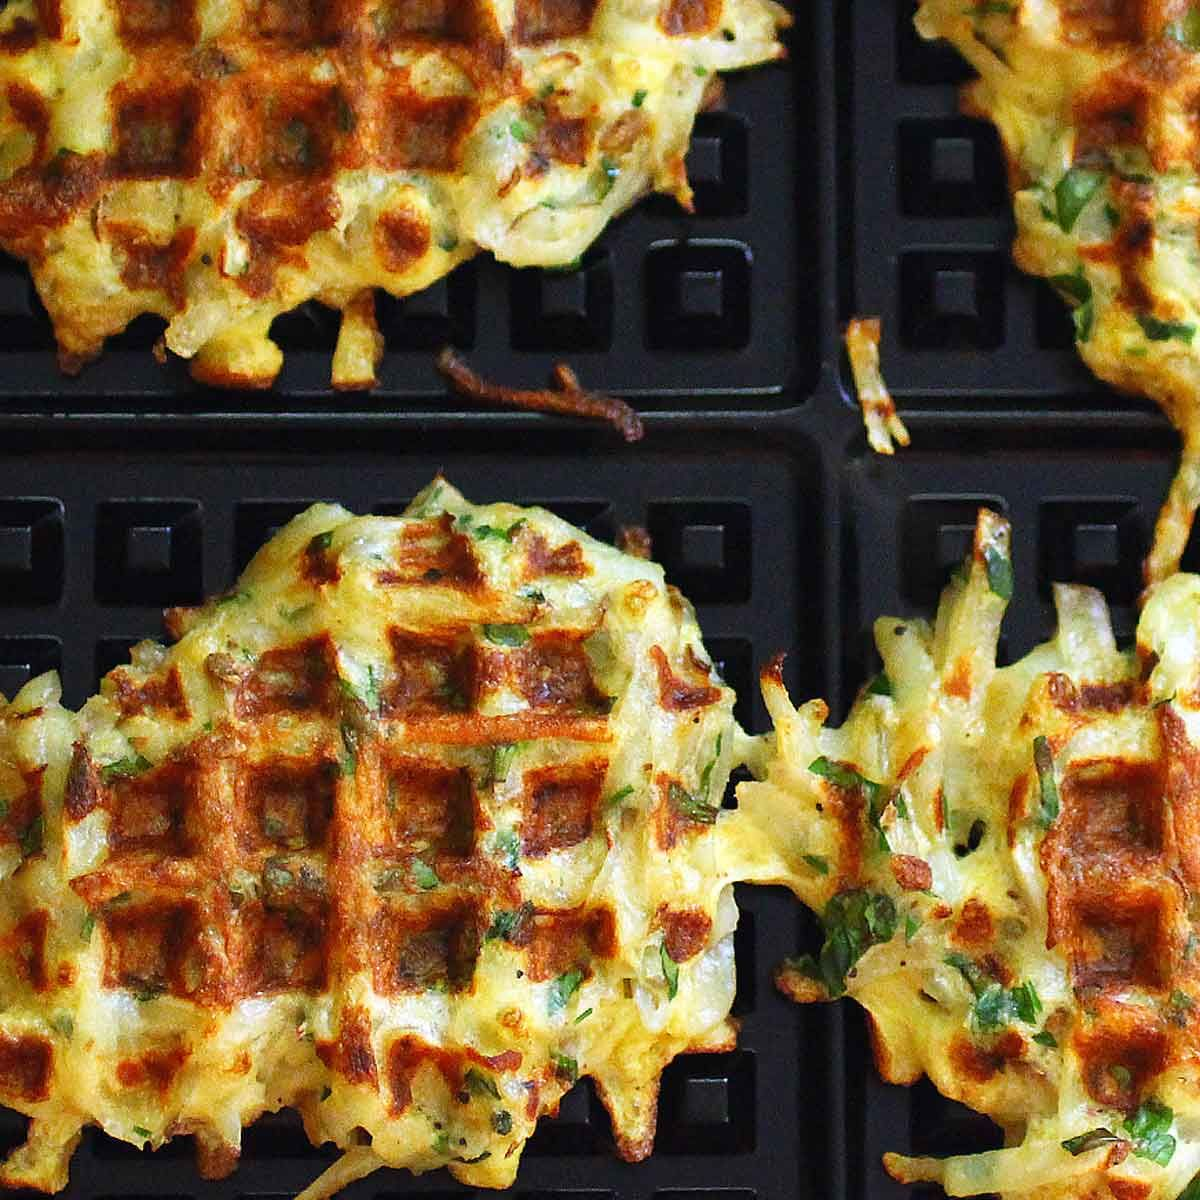 Waffle iron at home - the perfect solution for a sweet table